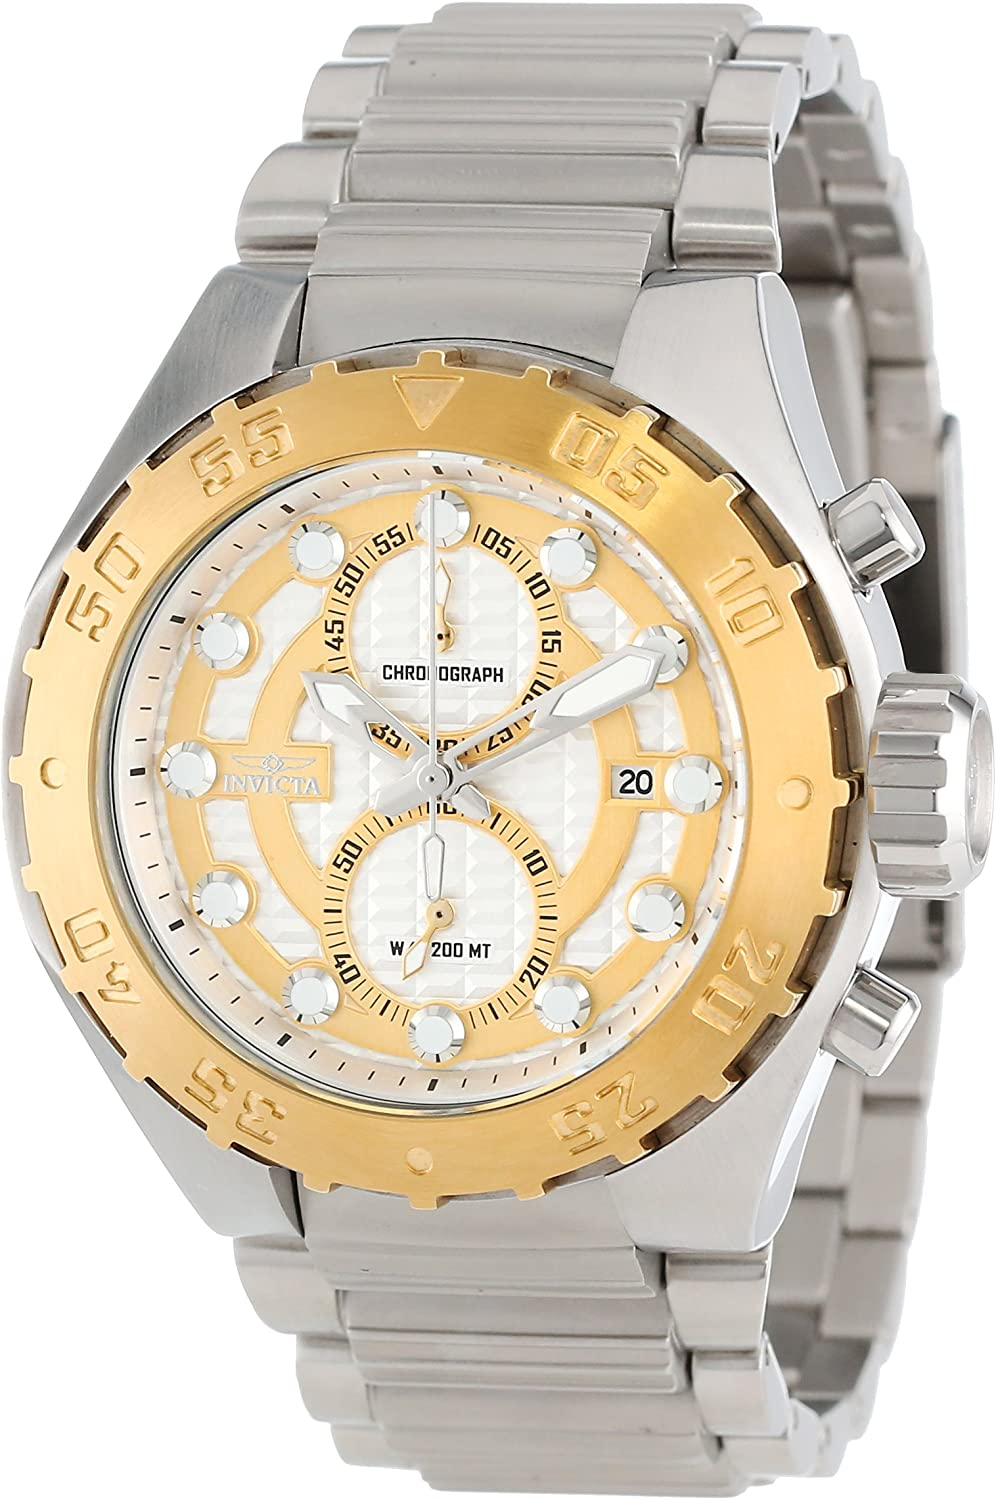 Invicta Men's 13090 Pro Diver Chronograph Silver Textured Dial Stainless Steel Watch